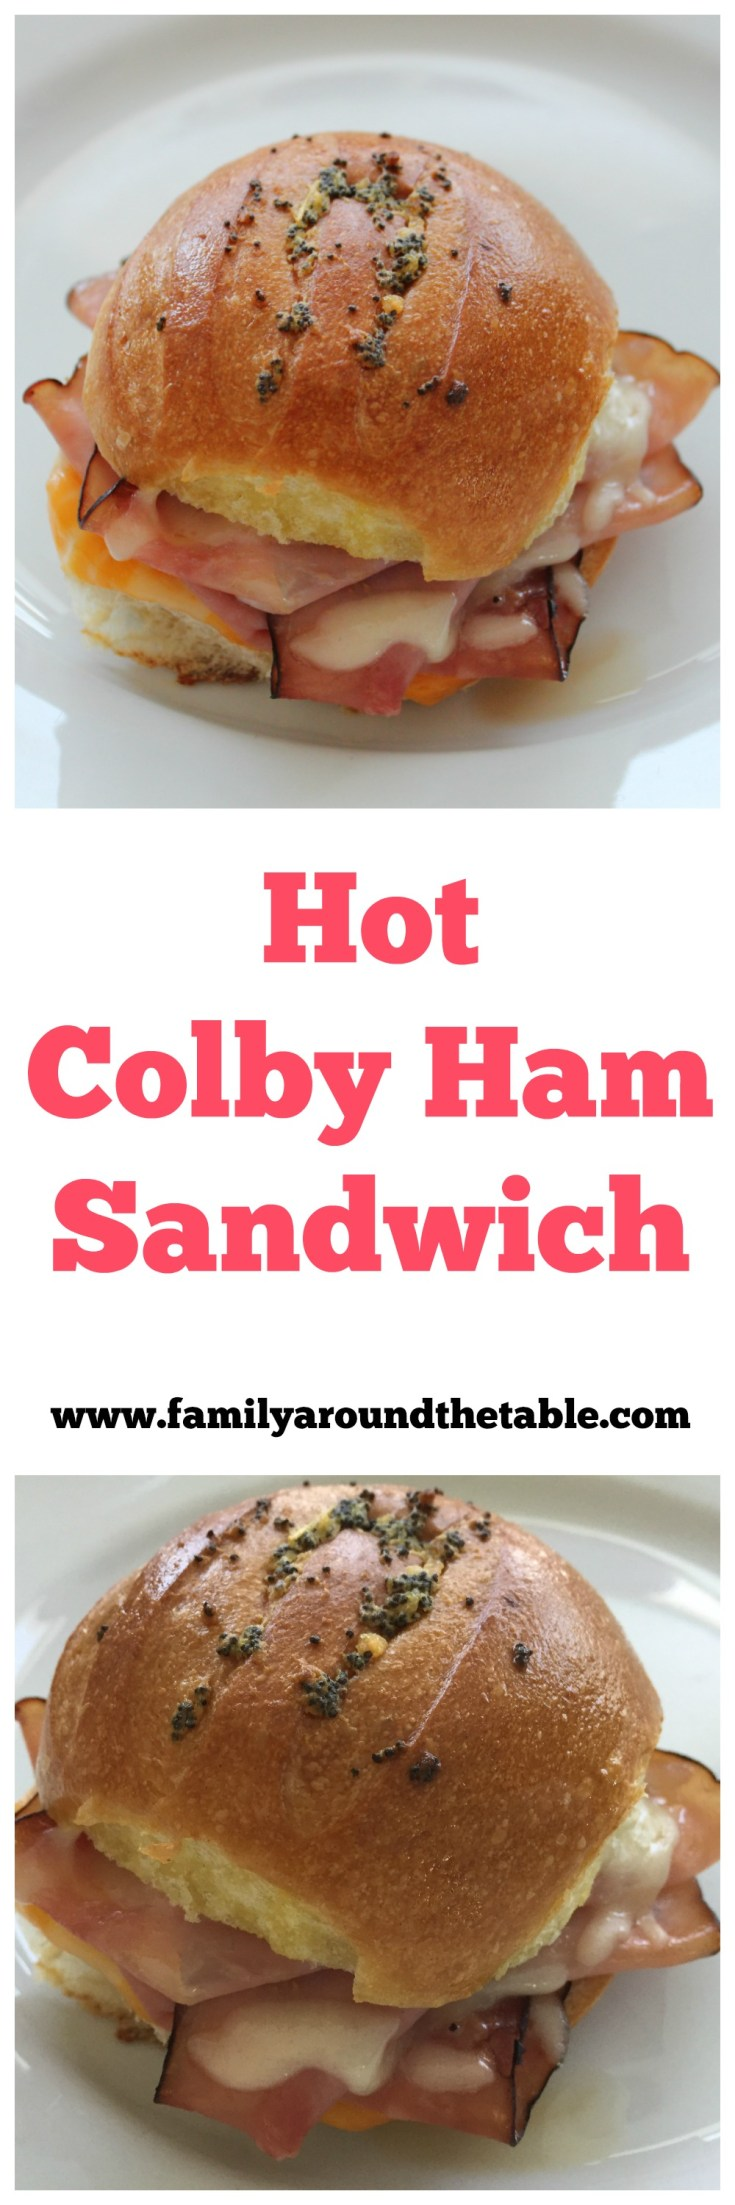 Hot Colby Ham Sandwiches are an easy weekend lunch or weeknight dinner.